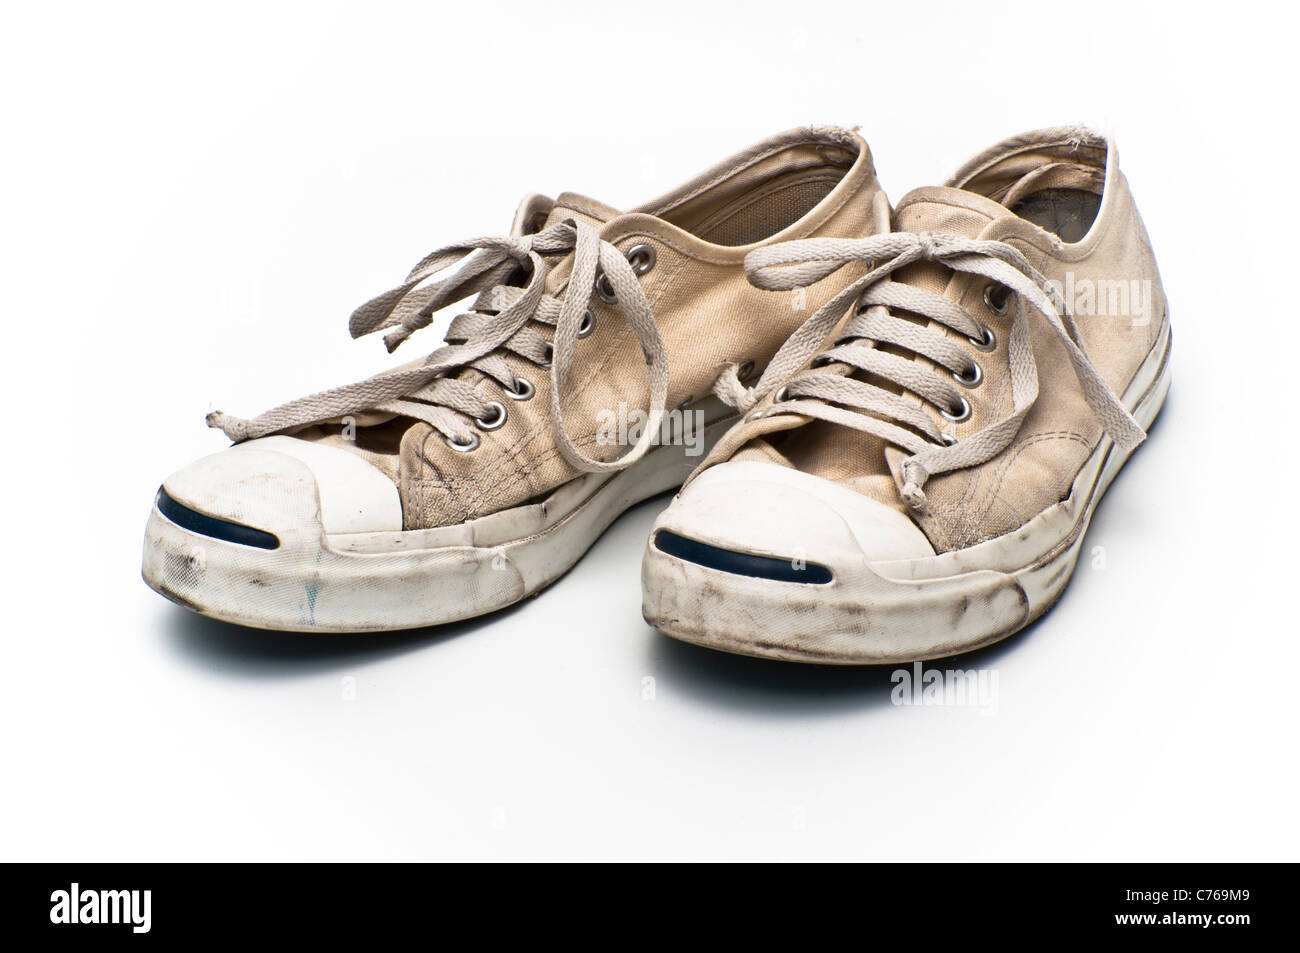 190b2ba9571235 Converse Jack Purcell tennis shoes on a white background Stock Photo ...